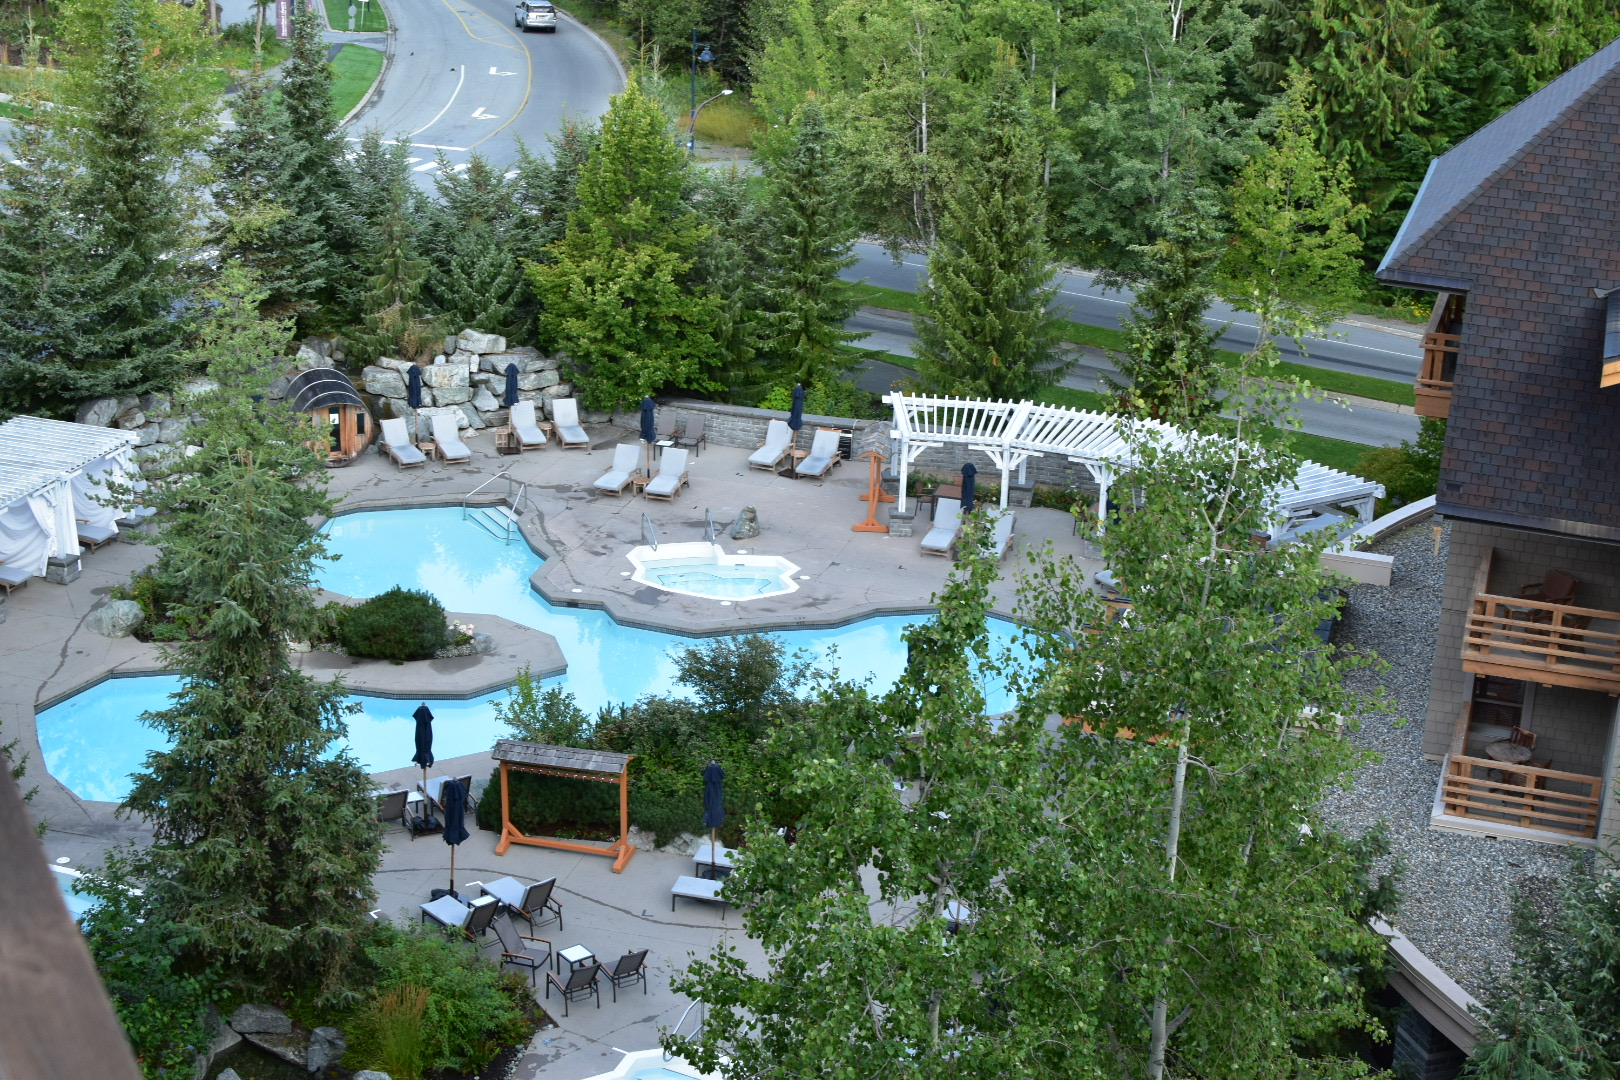 48-Hour Summer Getaway to Whistler BC with the Family